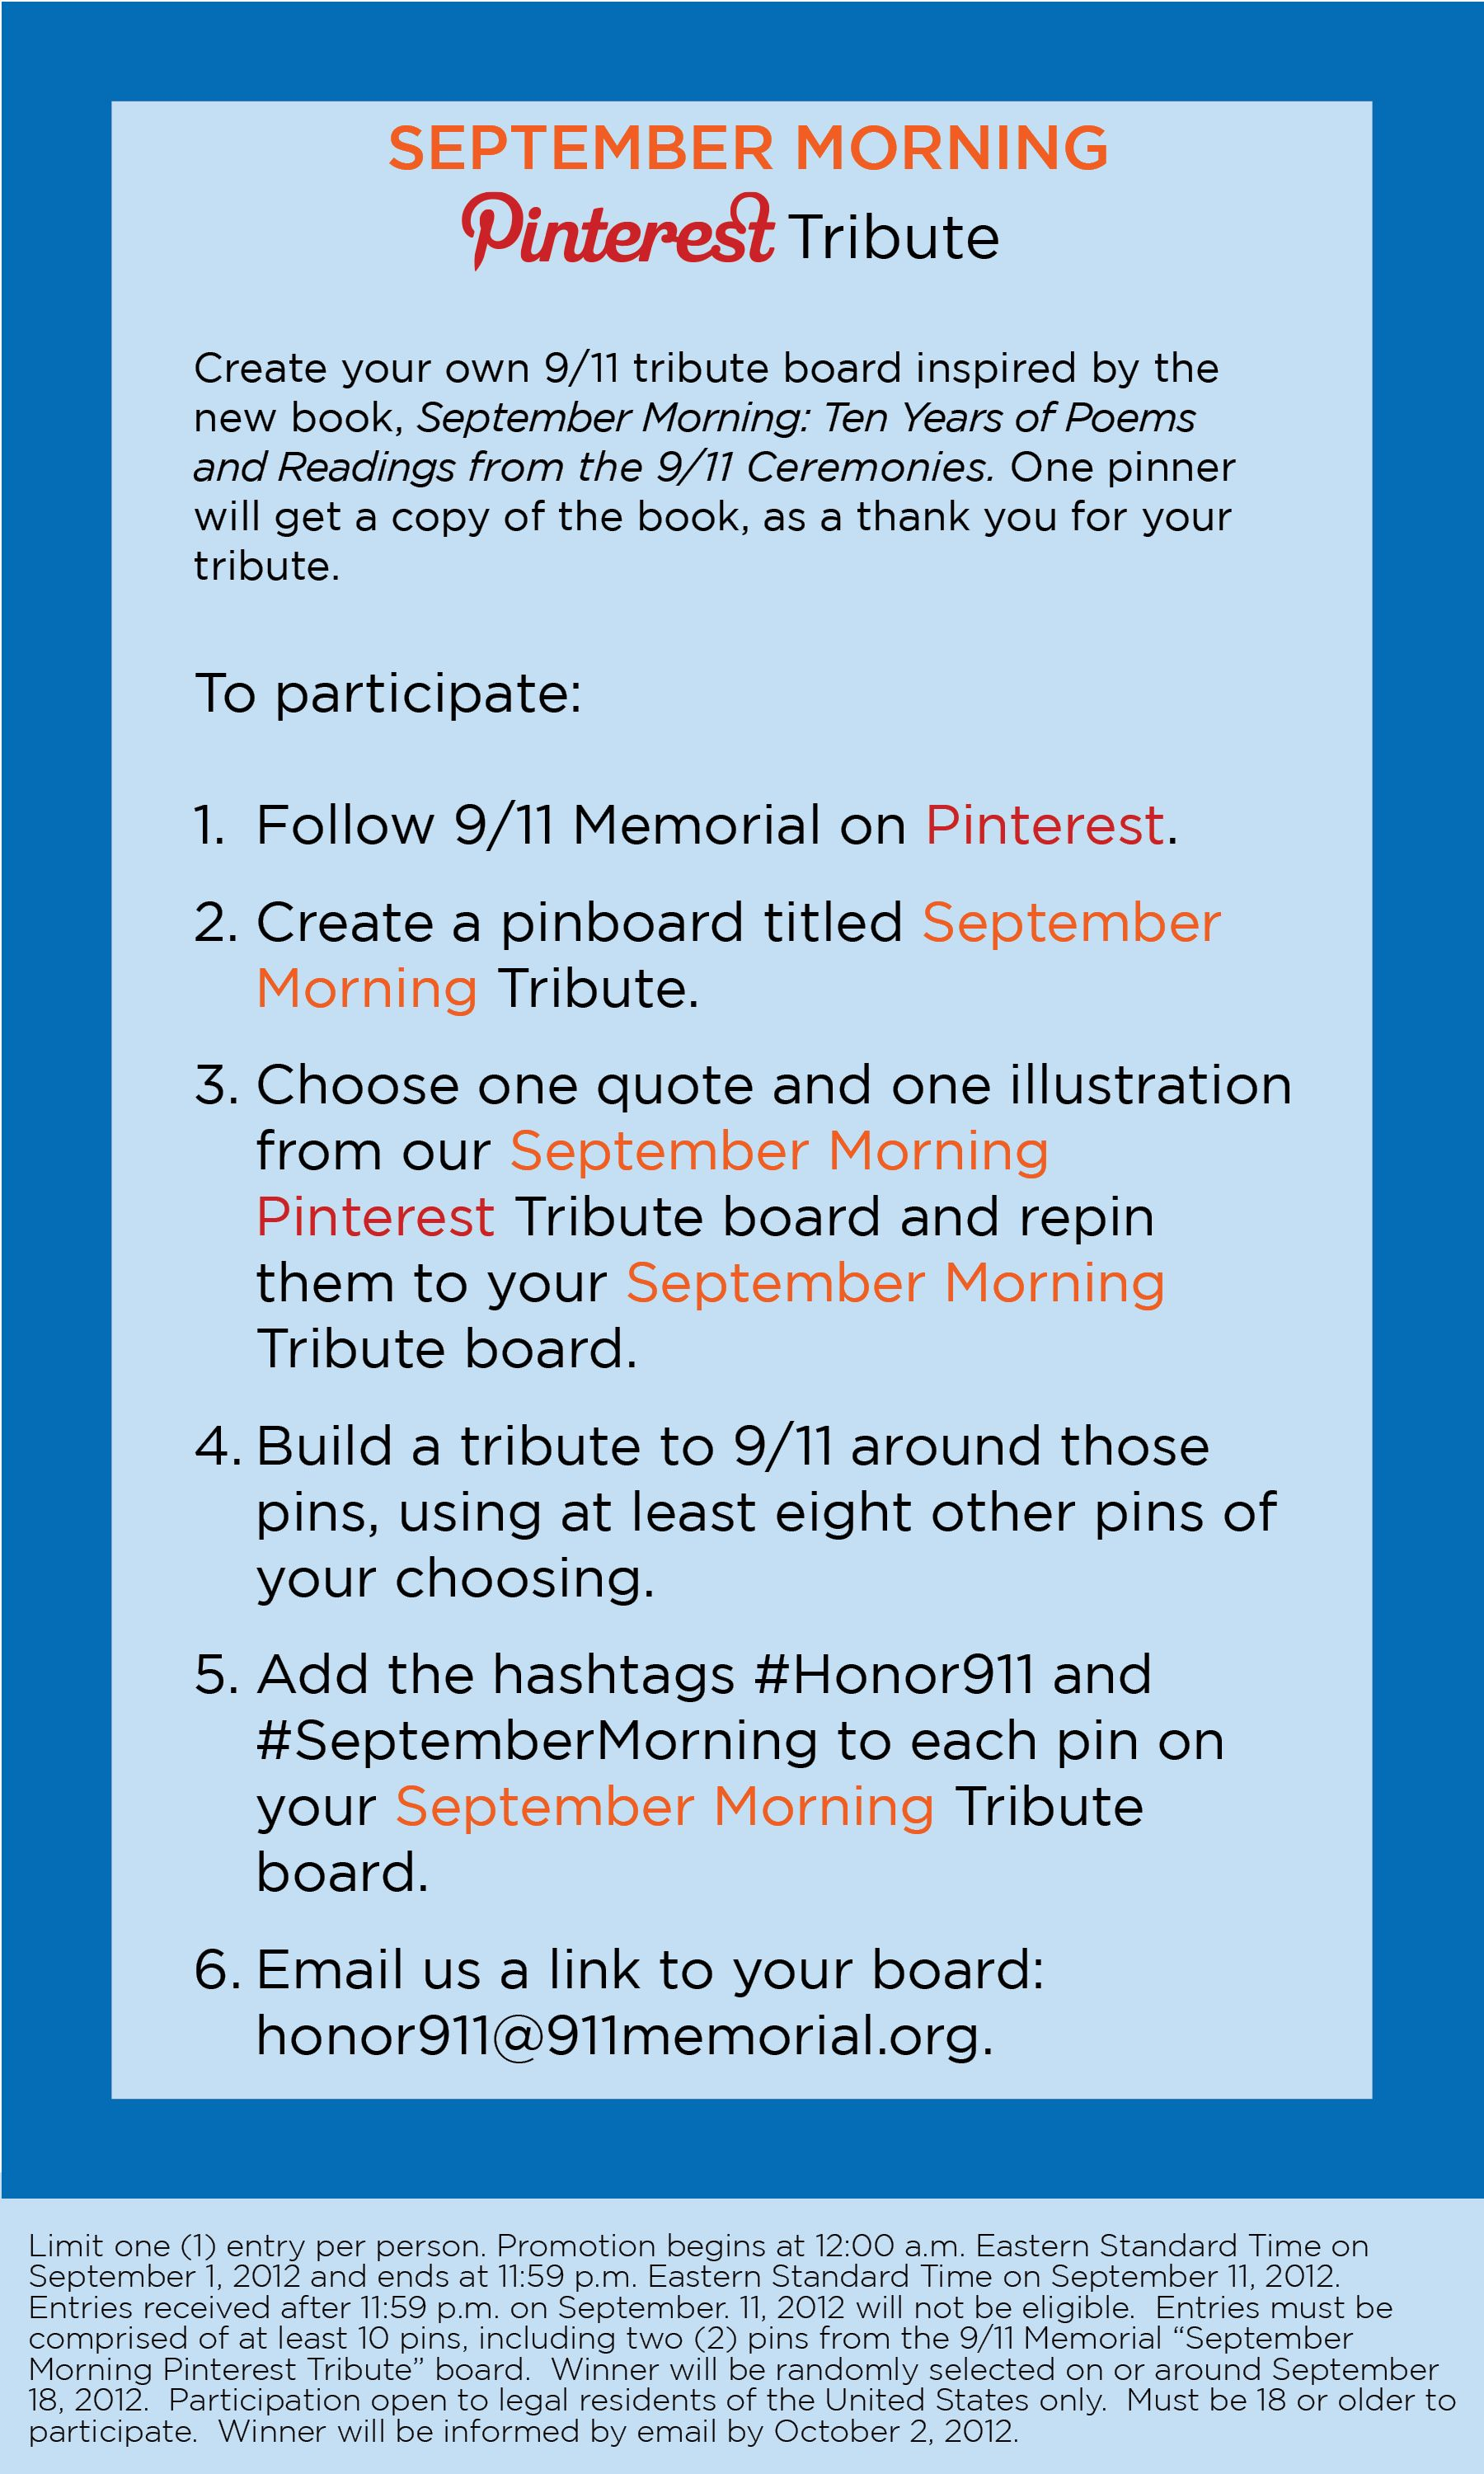 Between Now And September 11 Create Your Own